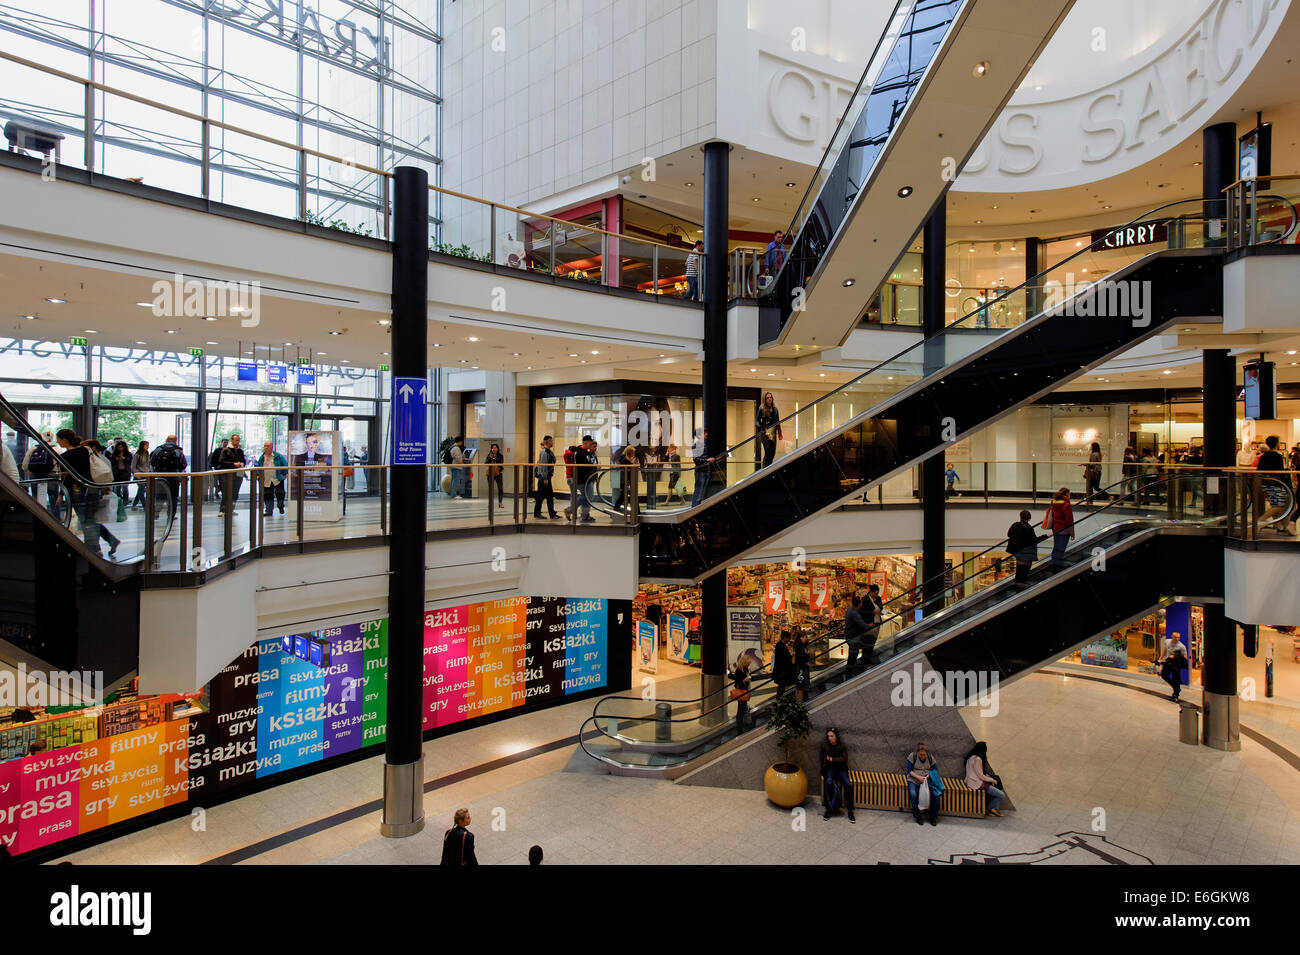 Shopping Center Galeria Krakowska In Krakow Poland Europe Stock Photo Royalty Free Image